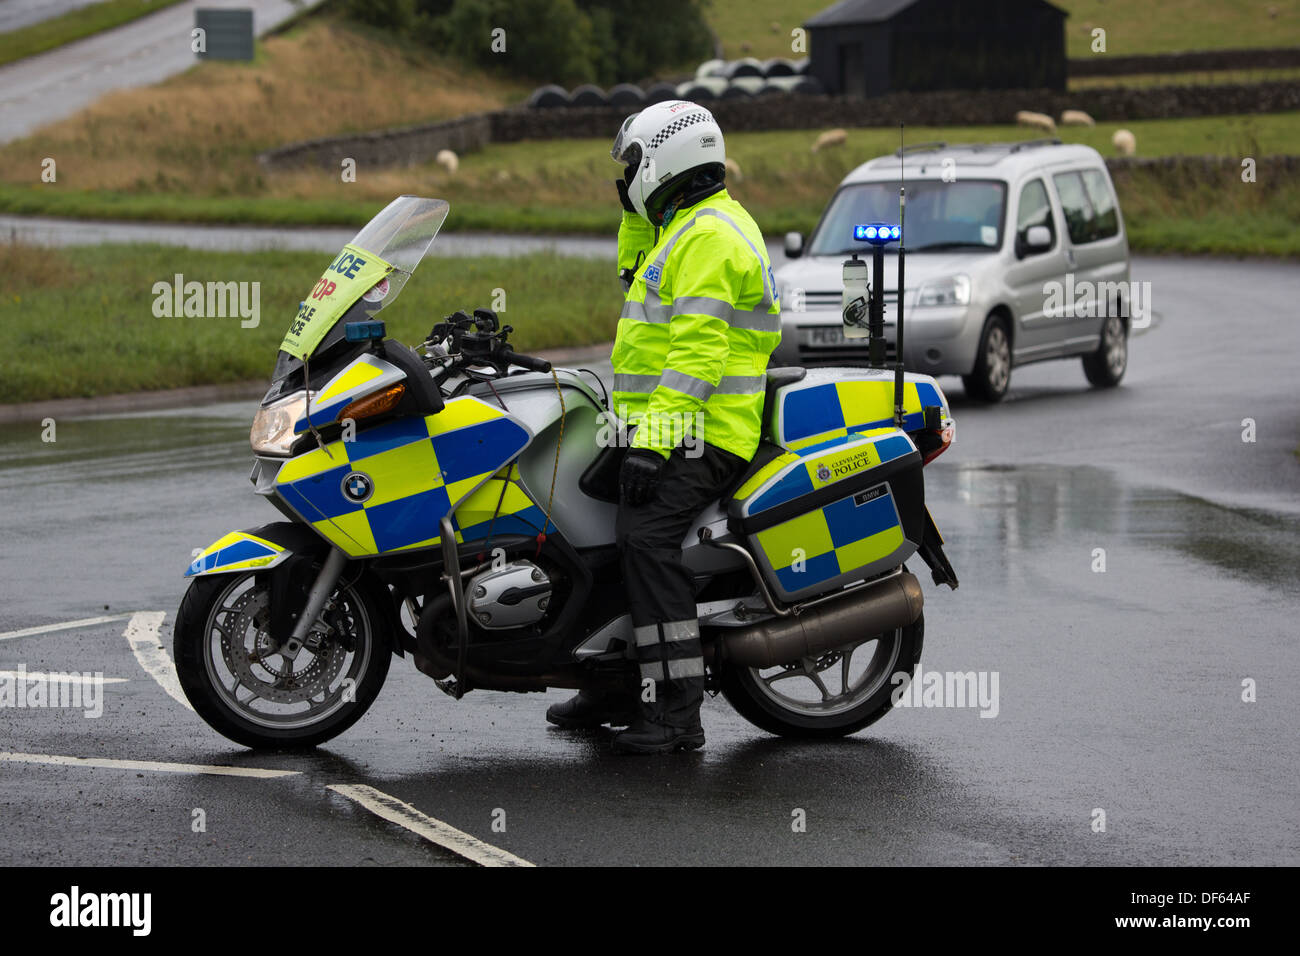 A Motorcycle Police Traffic Officer directing traffic at a road block - Stock Image